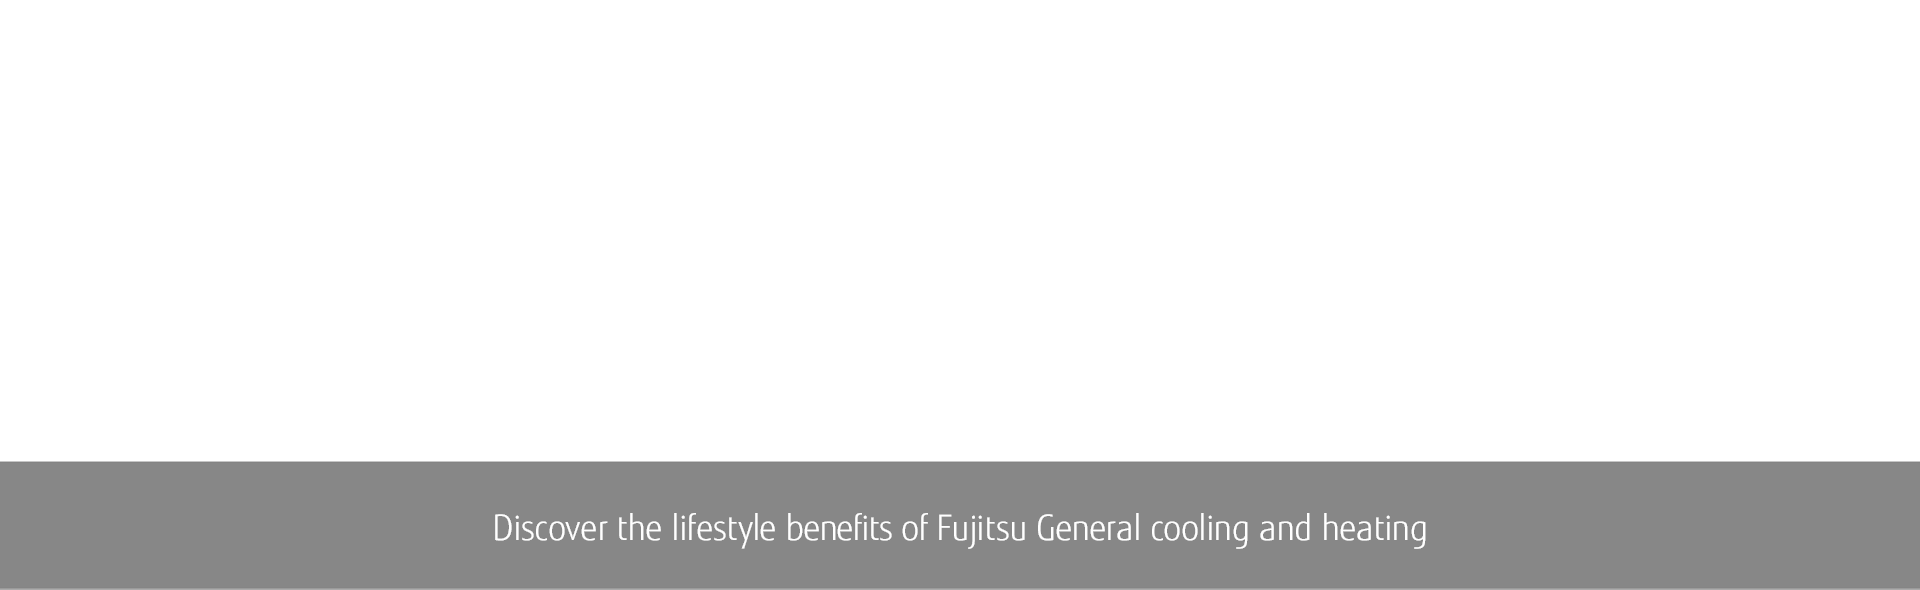 RESIDENTIAL Halcyon™ MINI-SPLIT BENEFITS: Discover the lifestyle benefits of Fujitsu General cooling and heating.